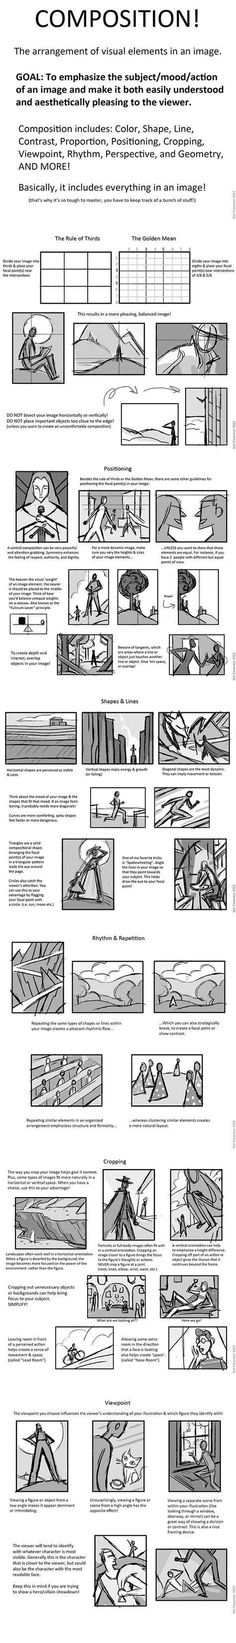 How To Storyboard A Short Film Plus Free Template Downloads To